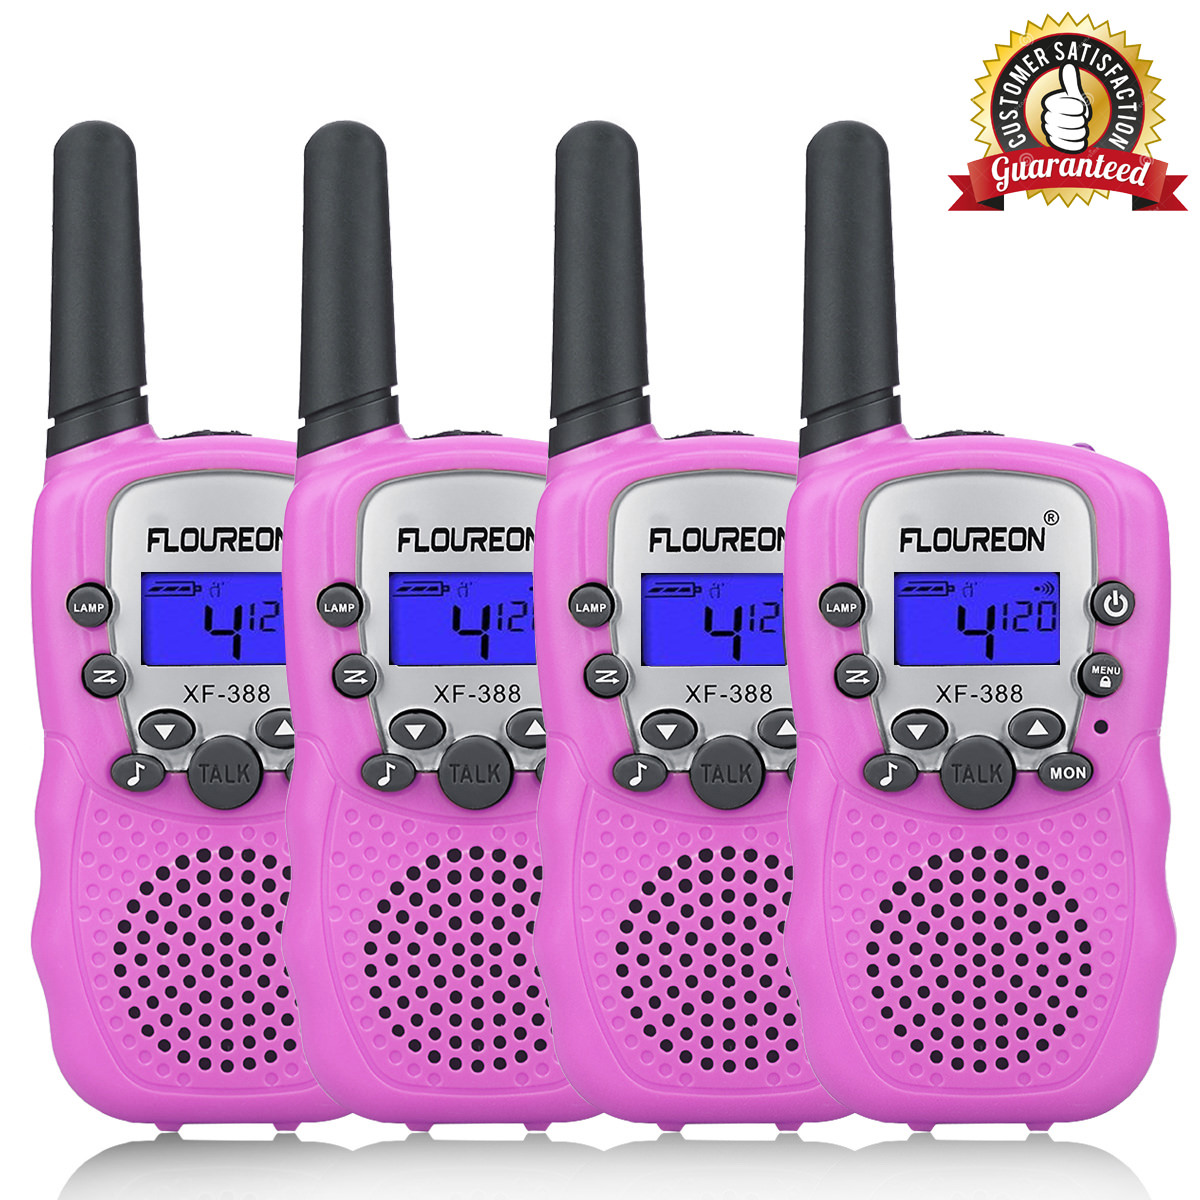 Ryans World FRS Walkie Talkies for Kids with Lights and Sounds Kid Friendly Easy to Use Kid Designs